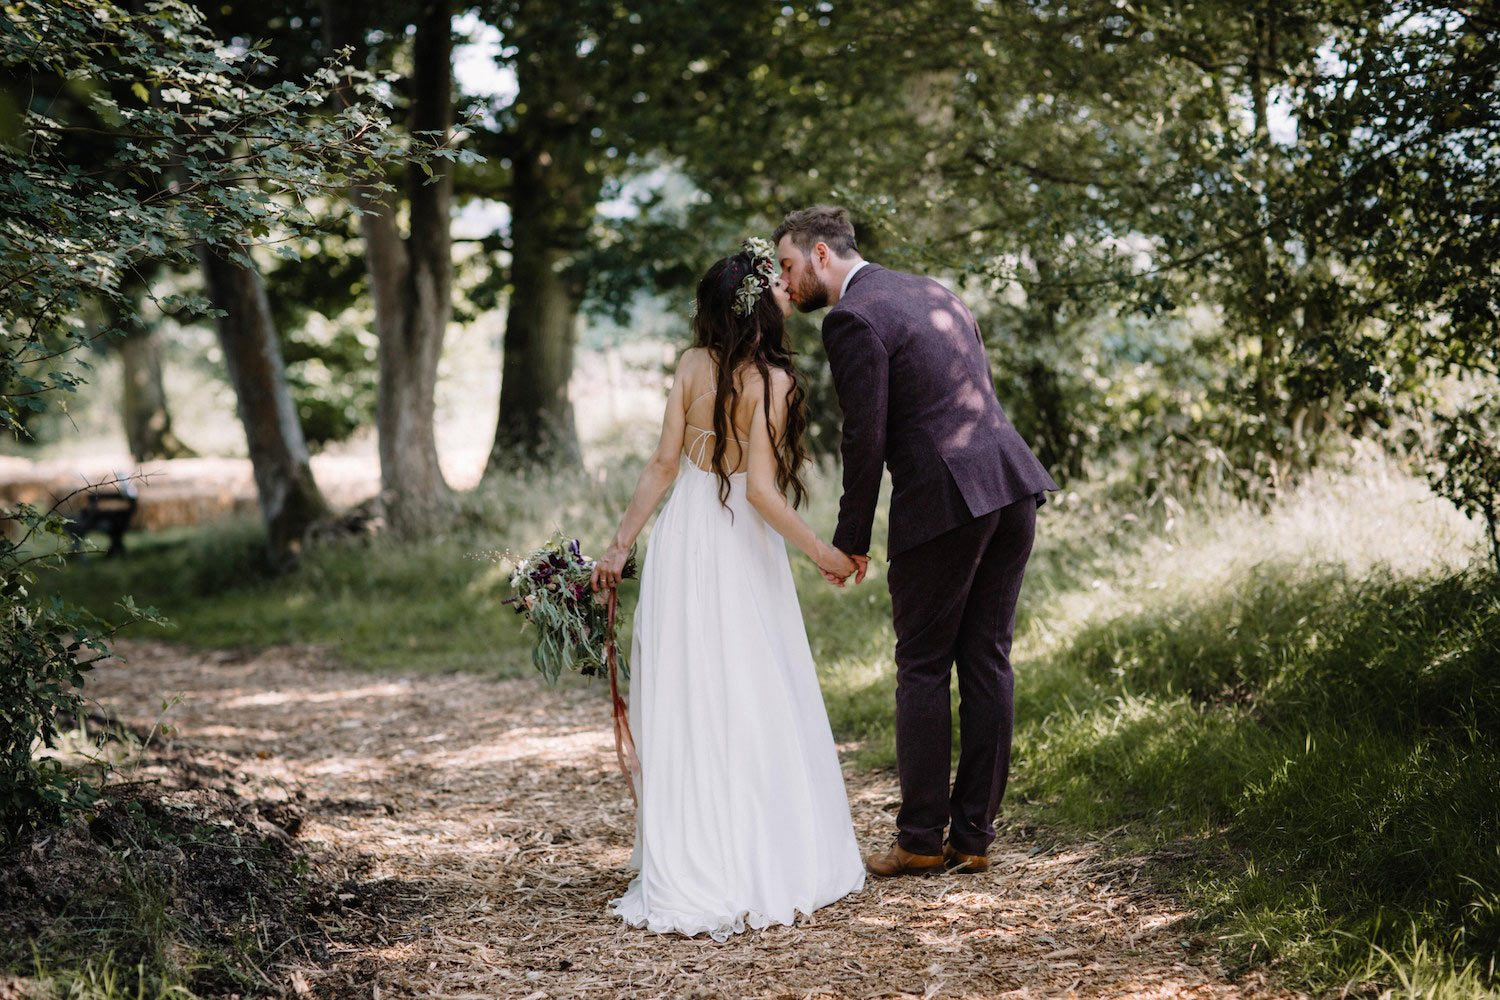 Bohemian bride and groom kissing in woodland path